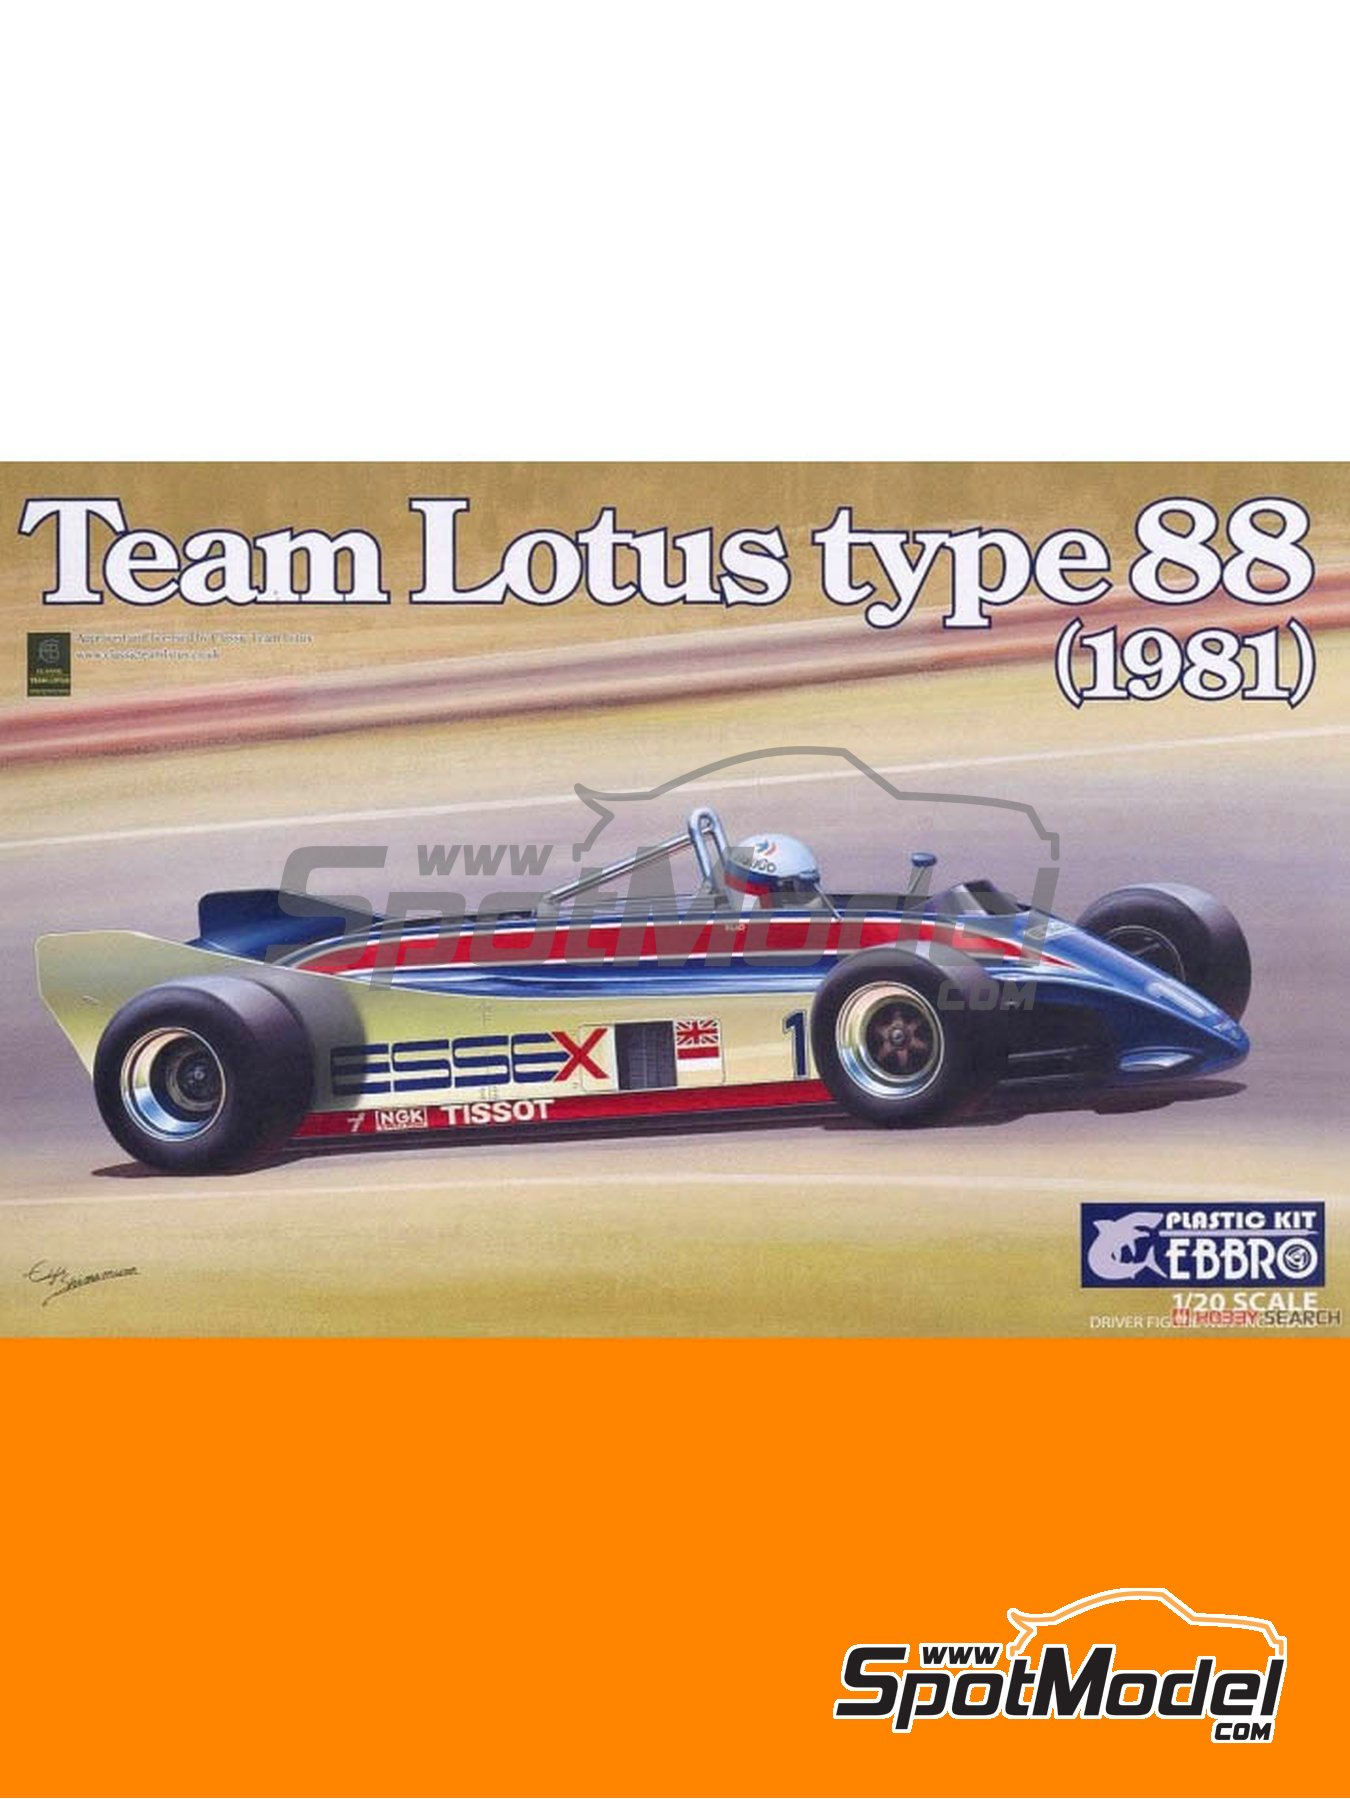 Lotus Ford Type 88 Essex - Gran Premio de USA West Long Beach 1981 | Maqueta de coche en escala 1/20 fabricado por Ebbro (ref. EBR20011) image